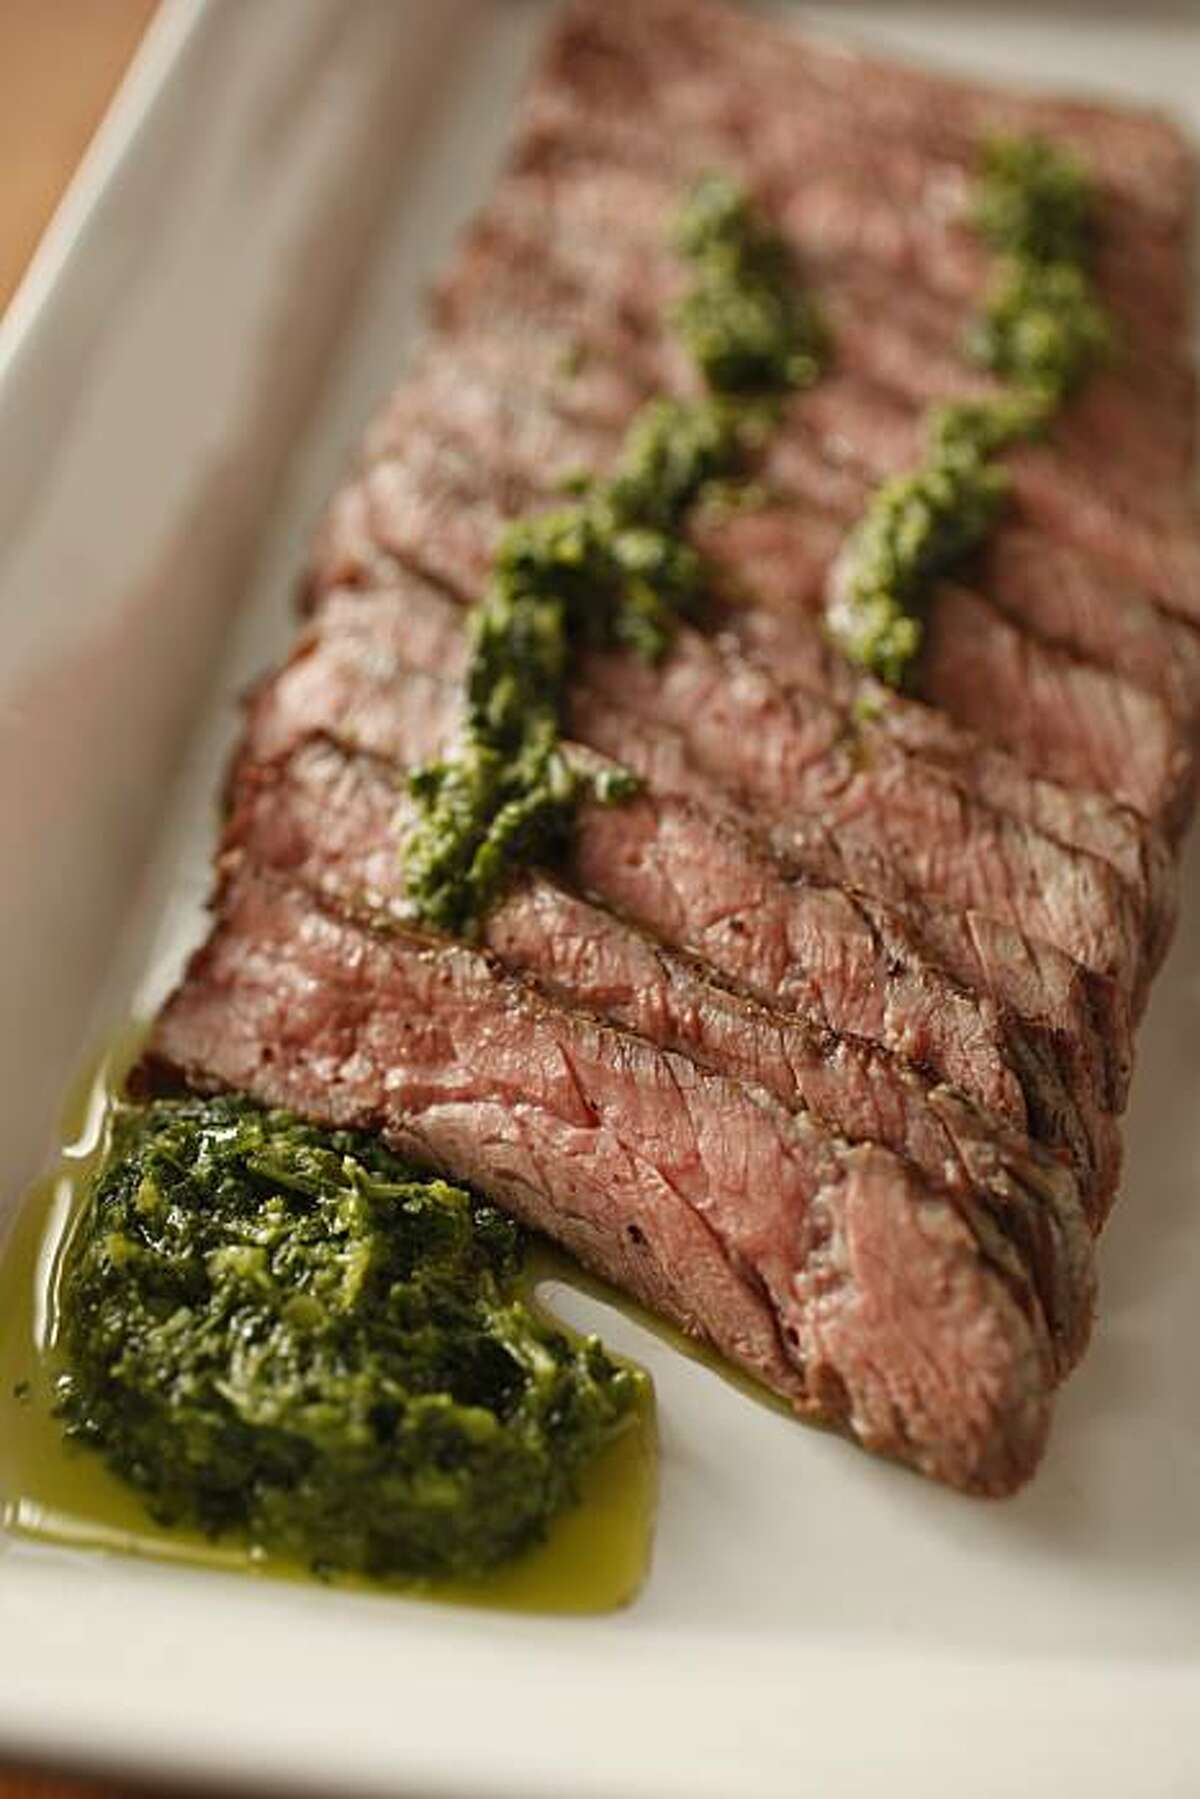 Steak with Salsa Verde in San Francisco, Calif., on May 19, 2010. Food styled by Anne Dolce.